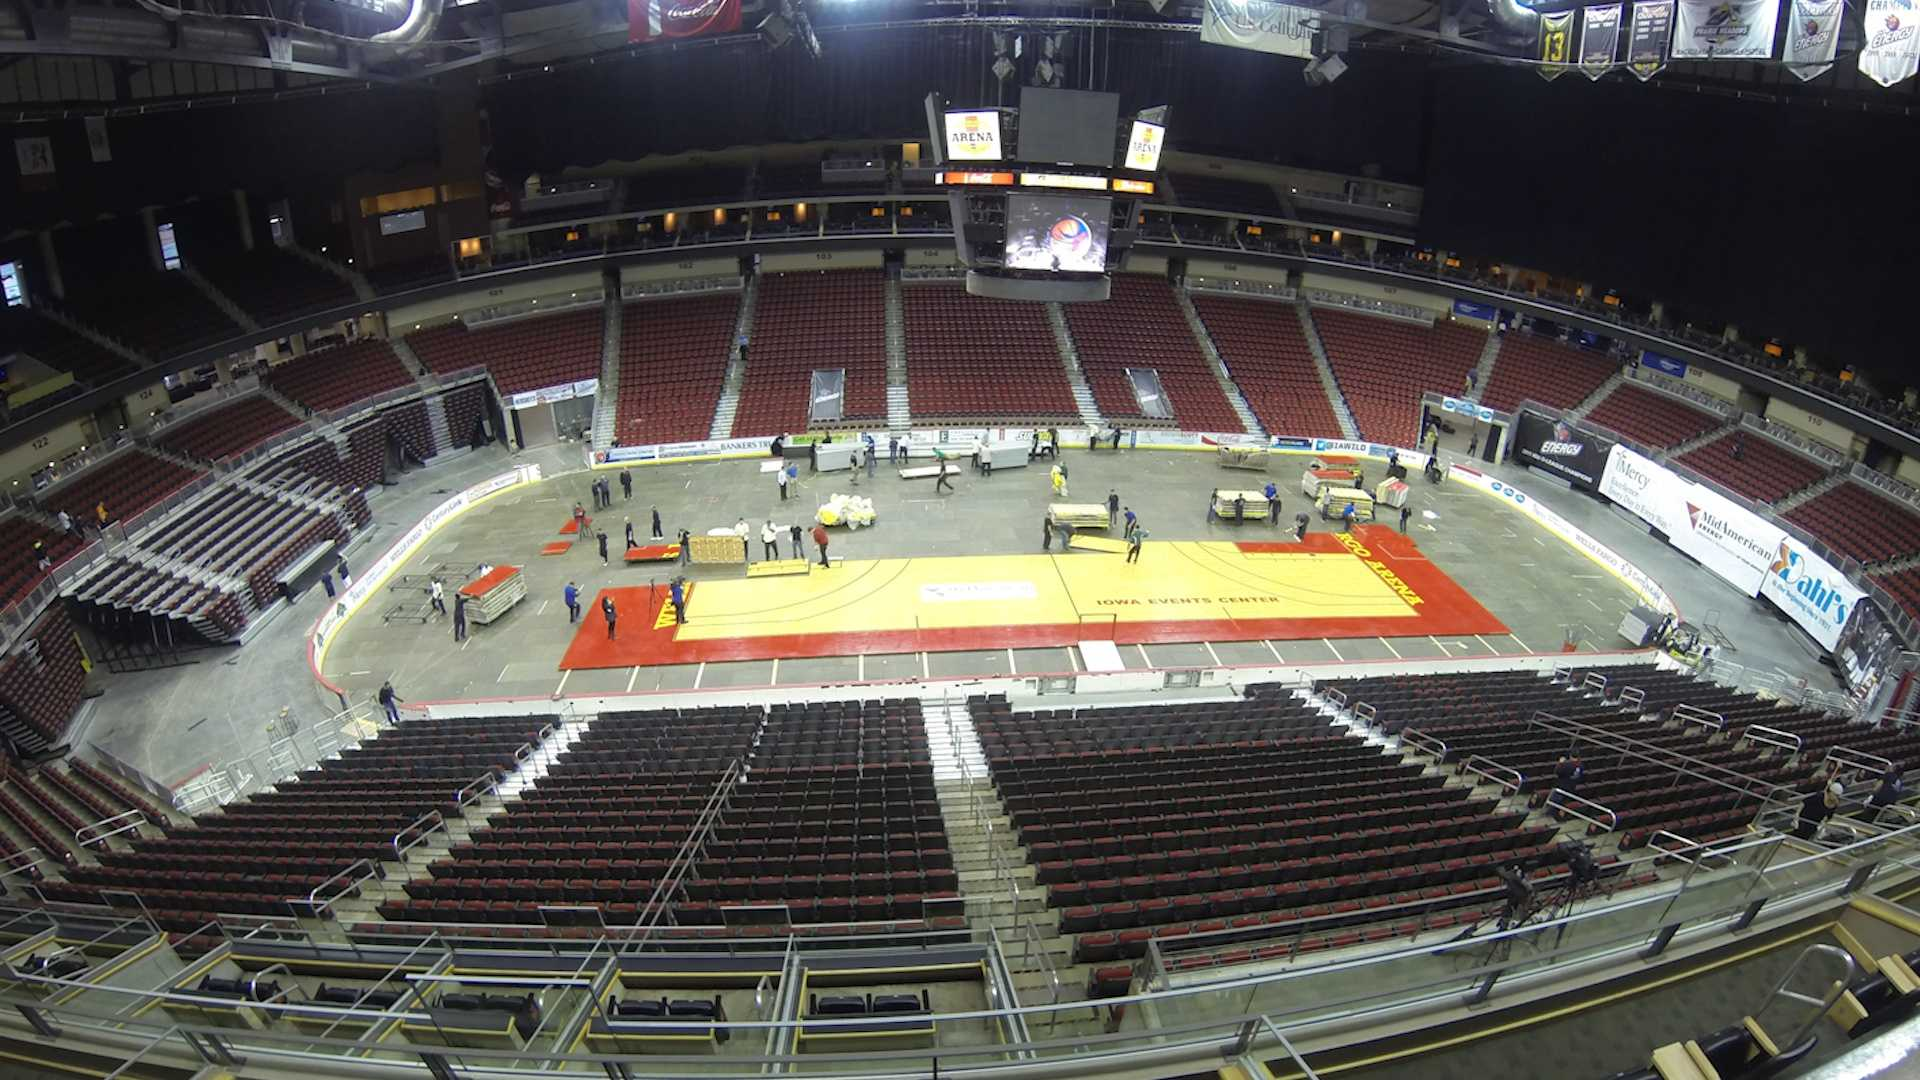 Time lapse video: workers had just hours to transform the arena from a hockey rink to a basketball floor. KCCI's Erin Hassanzadeh has the complete story tonight at ten.